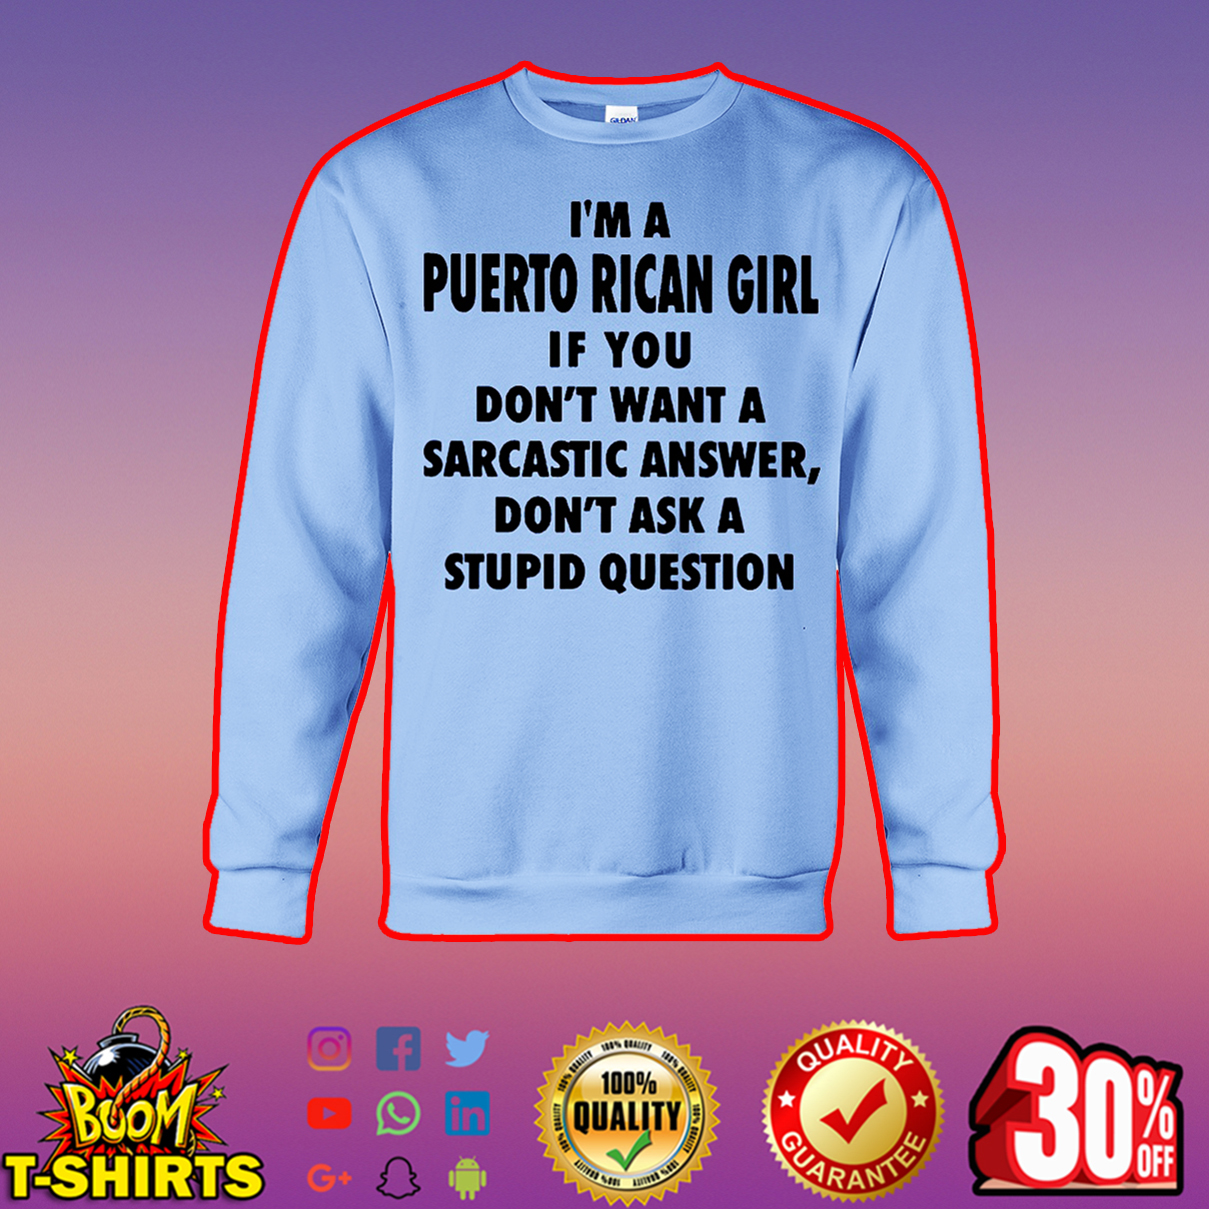 I'm a Puerto Rican girl if you don't want a sarcastic answer don't ask a stupid question sweatshirt